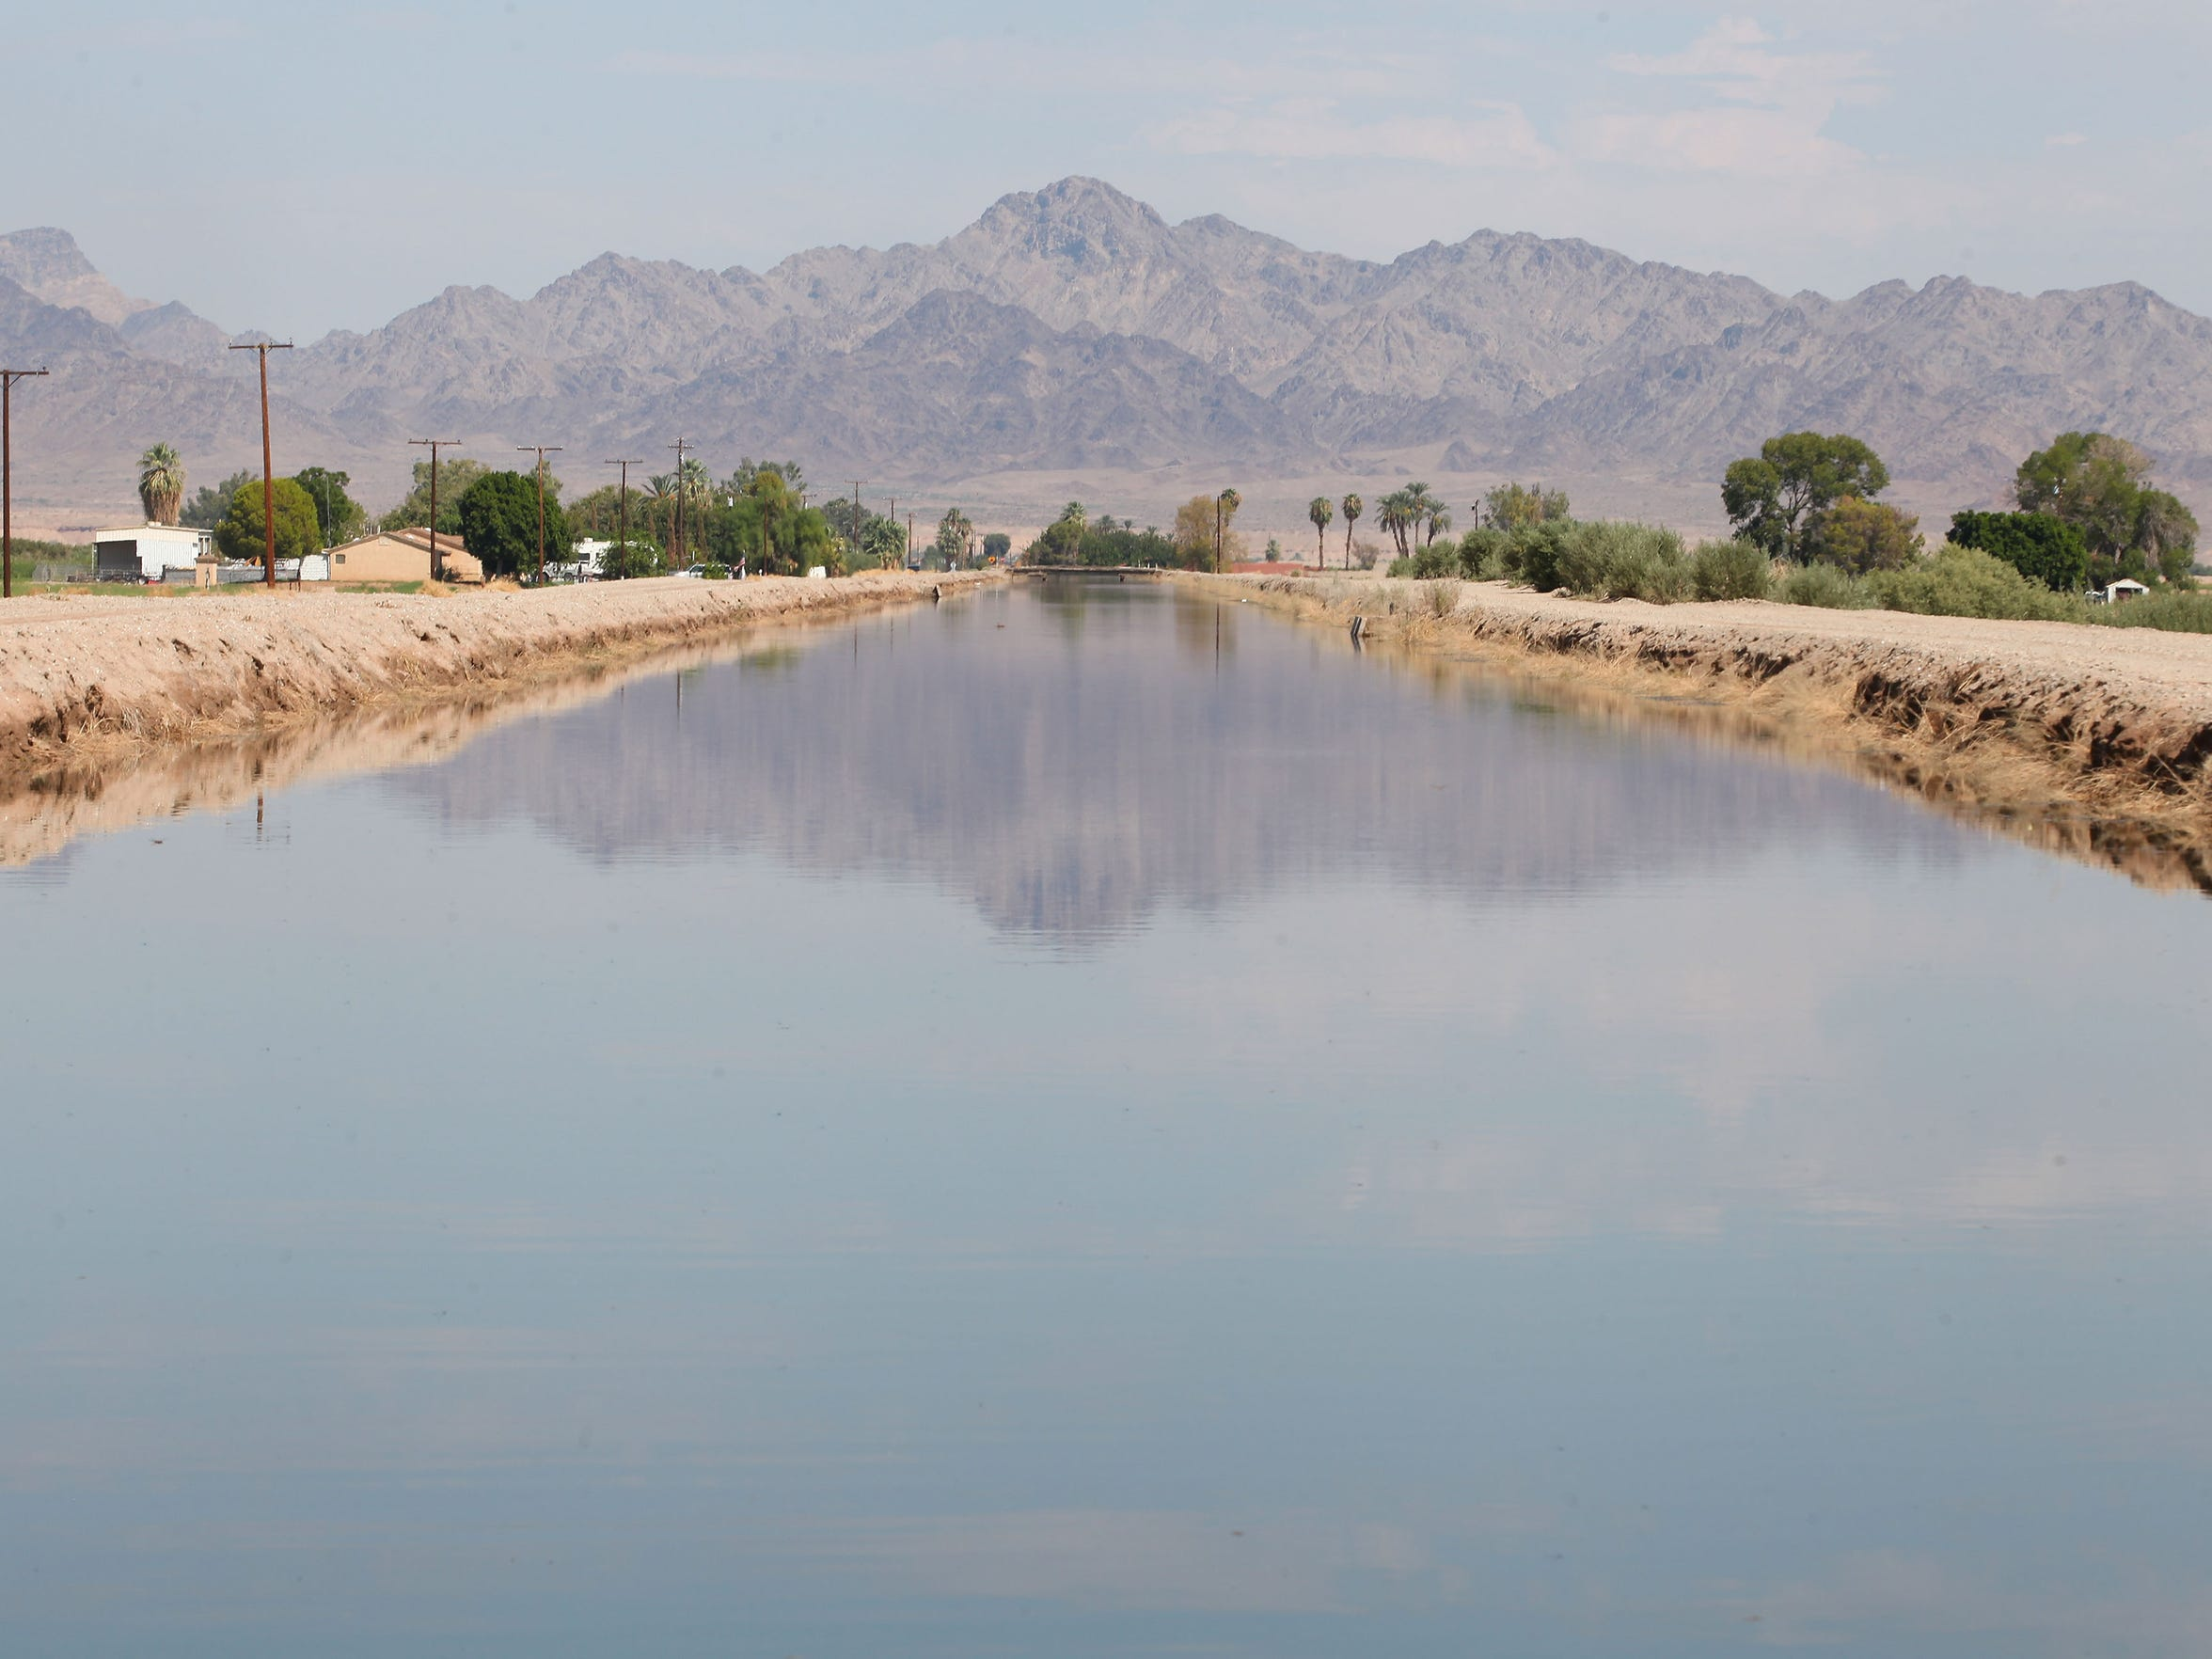 Mountains are reflected in a canal that carries Colorado River water to farmlands in the Palo Verde Valley.